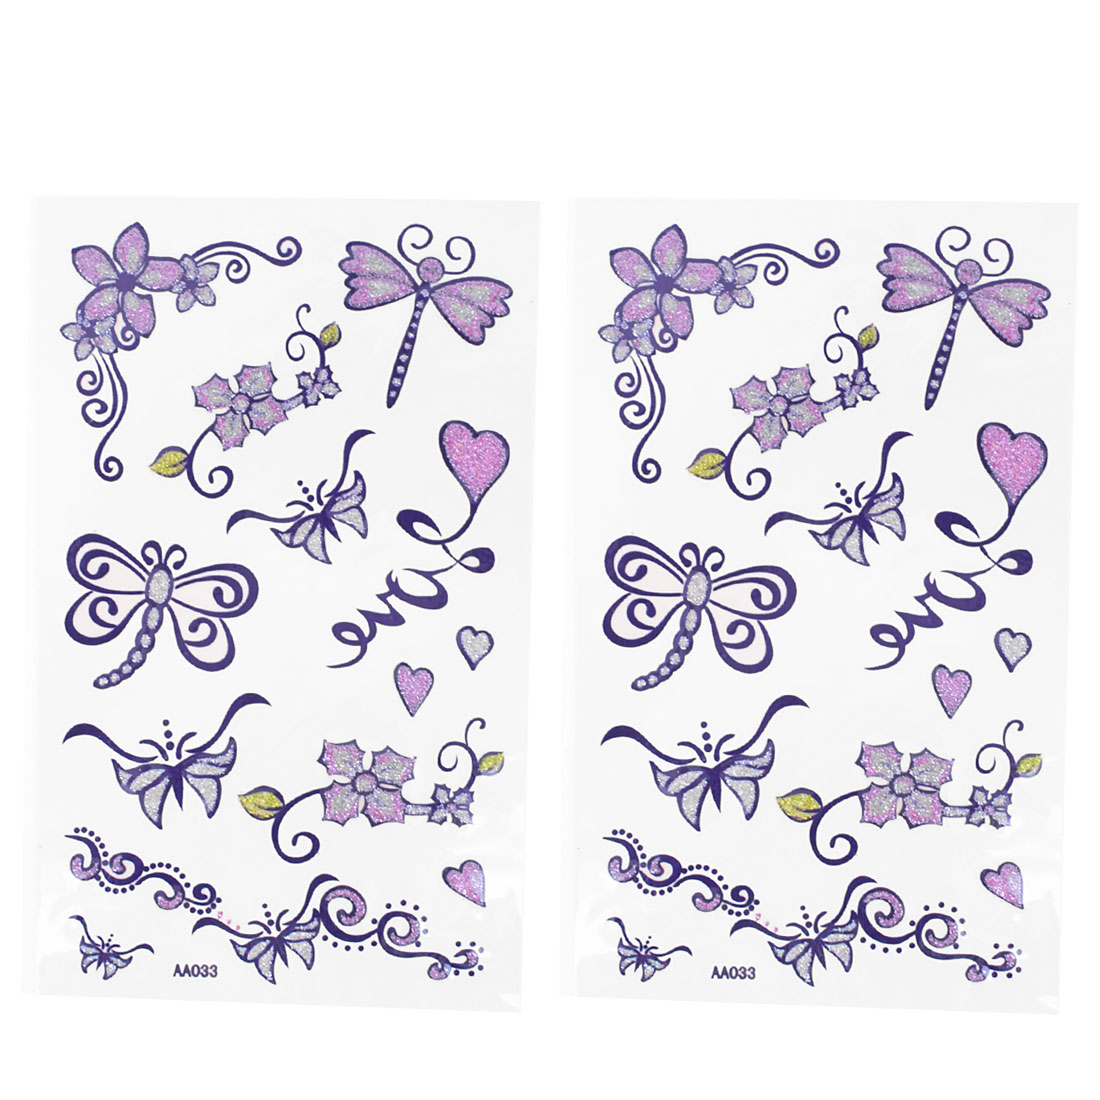 Skin Decorative Heart Floral Dragonfly Print Temporary Transfer Tattoos Stickers 2 Pcs